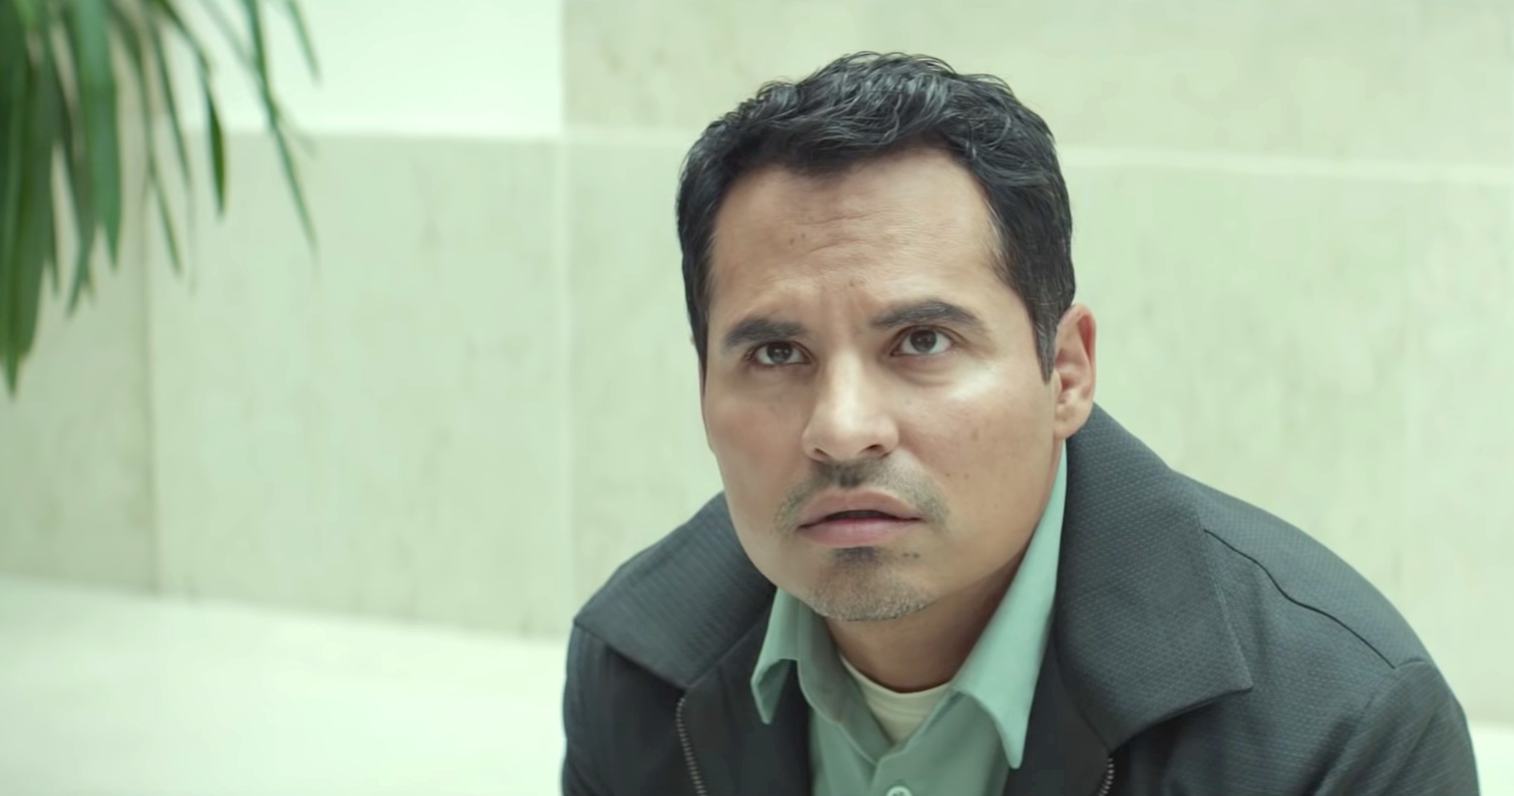 Extinction (2018), Michael Peña